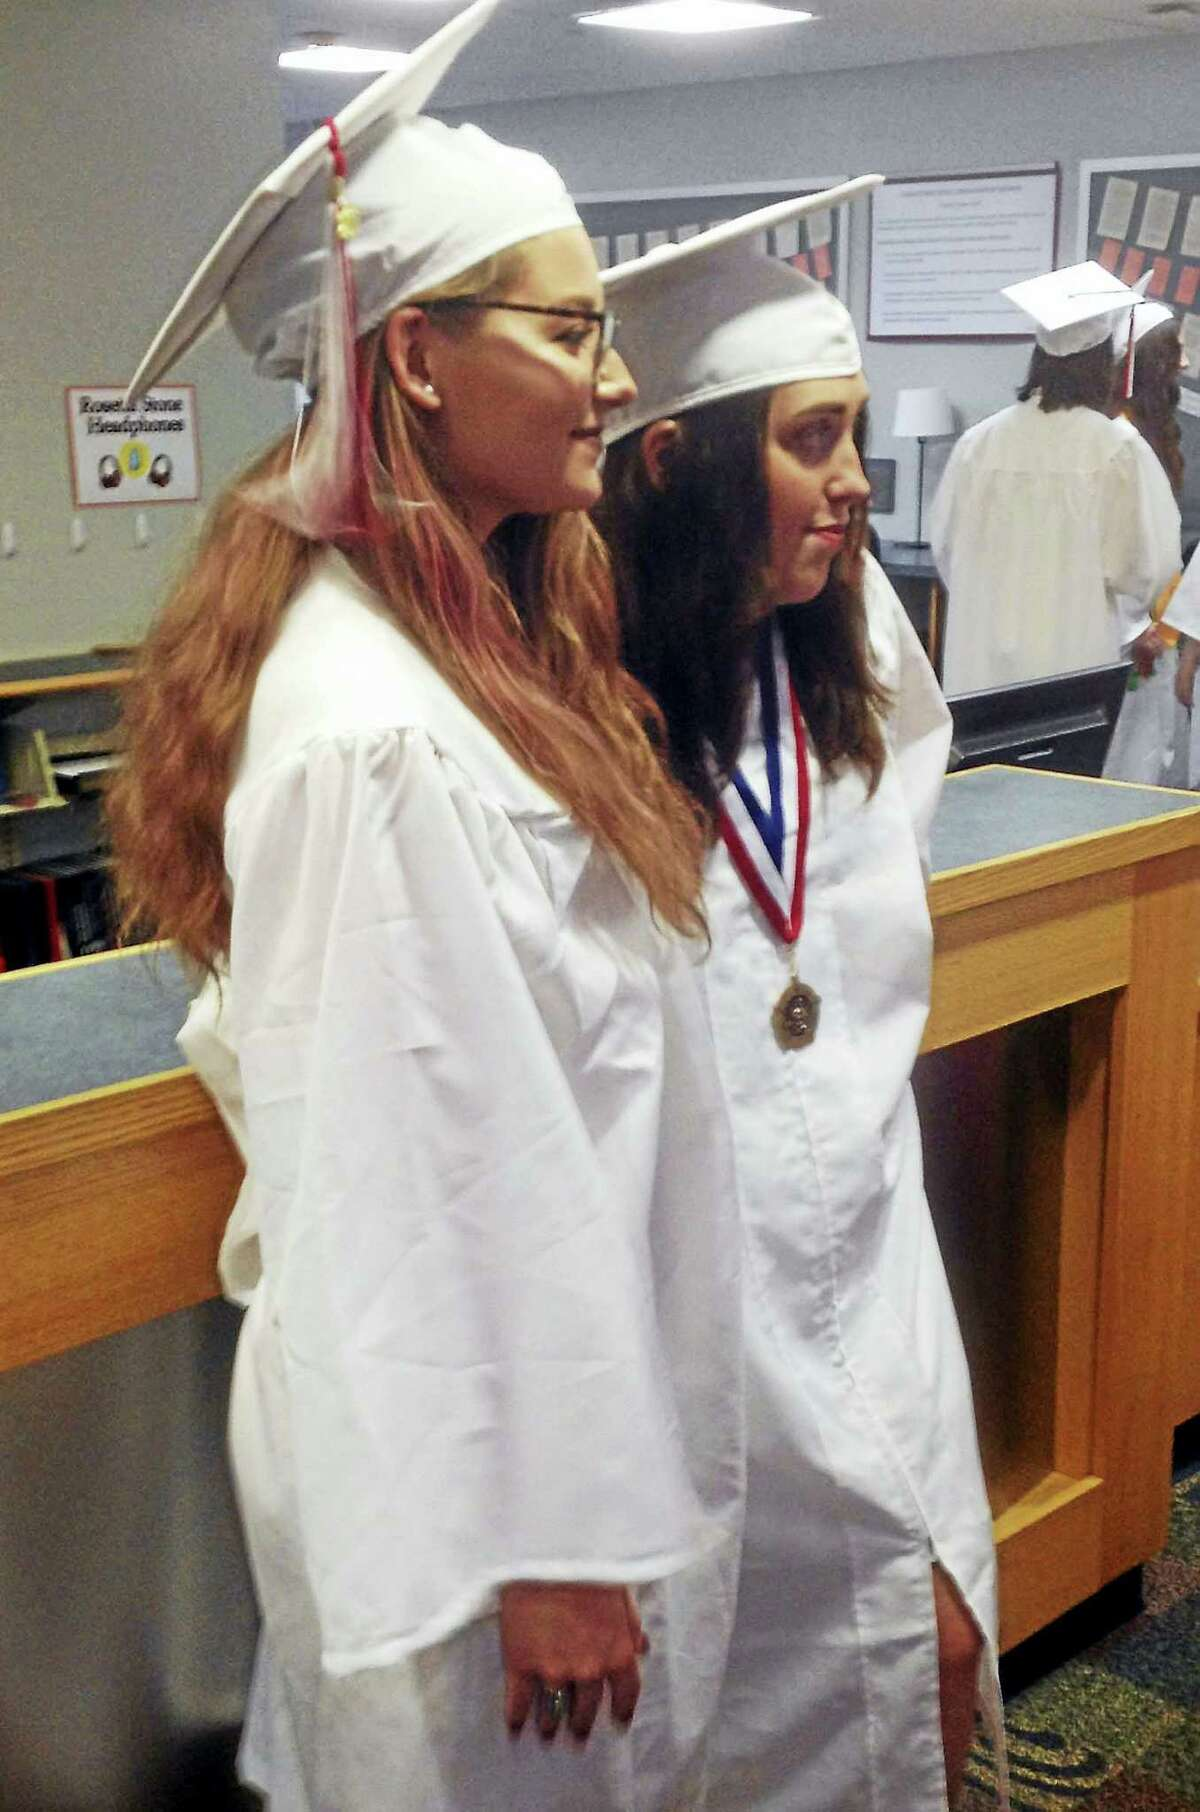 Cromwell High School graduated 142 students on Friday in an indoor ceremony.